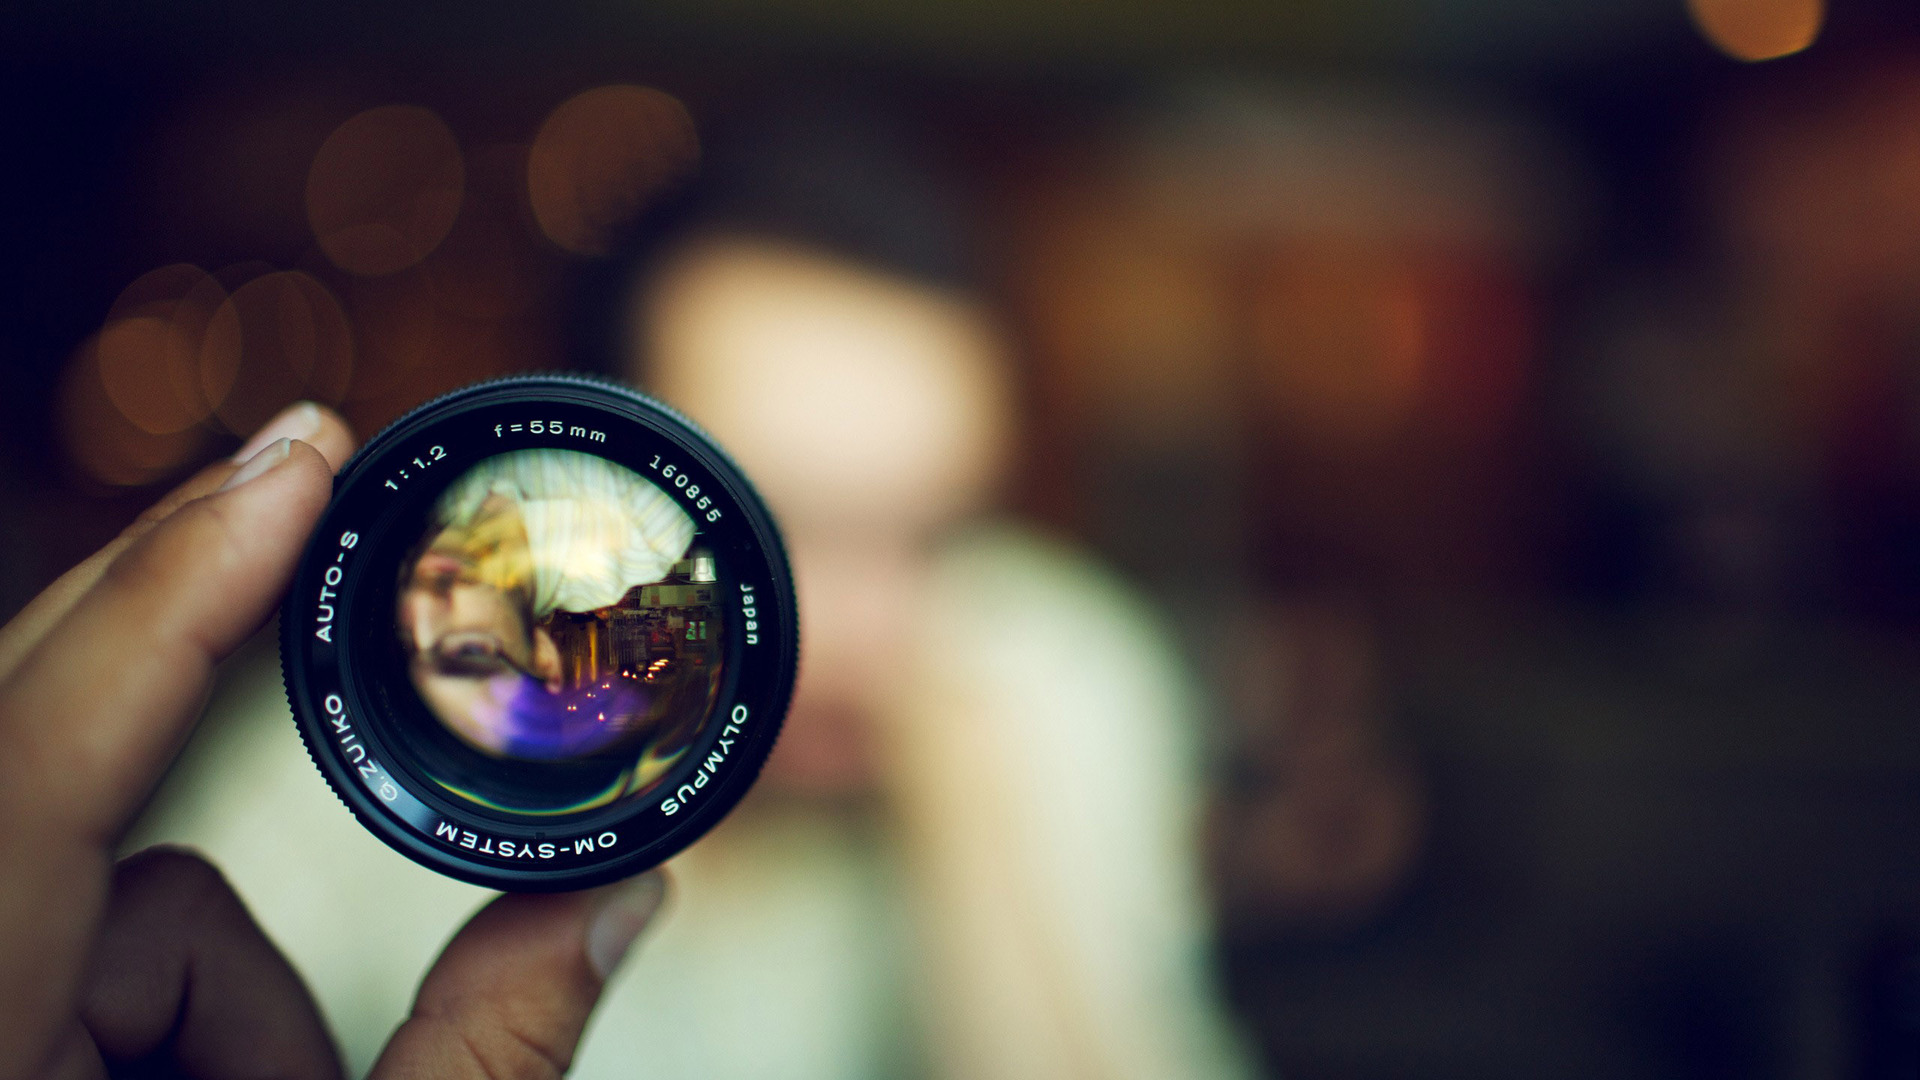 Photography Lens Examples Wallpaper Hd 1080p Learn Photo Editing Bokeh Photography Learning Photography